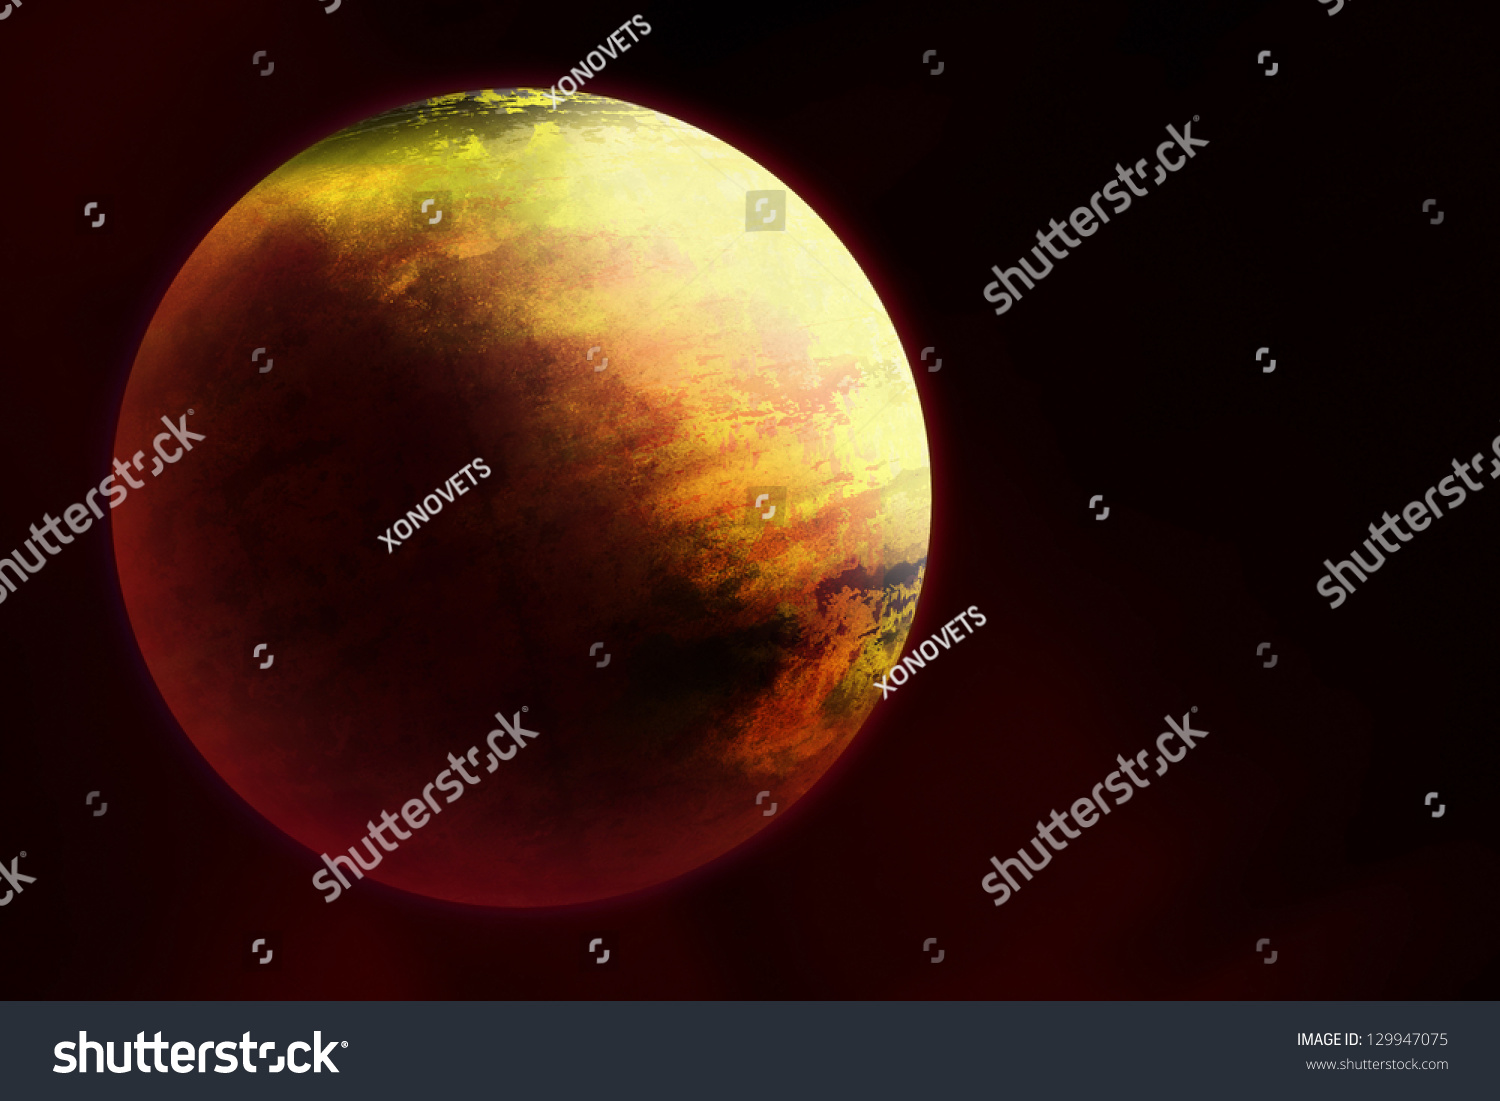 mars solar system song - photo #21